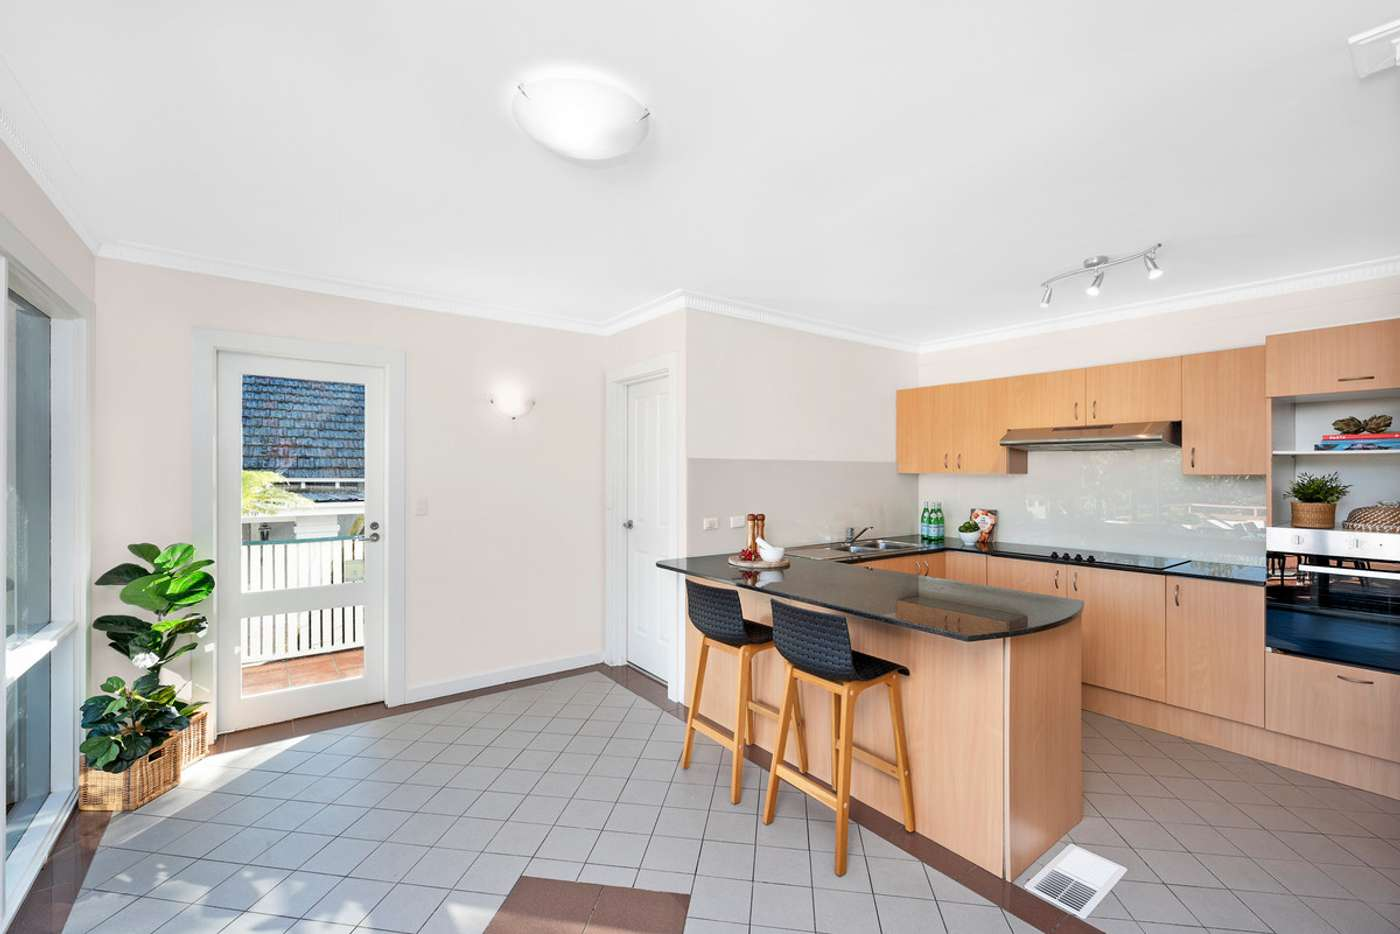 Fifth view of Homely house listing, 50A Central Avenue, Mosman NSW 2088